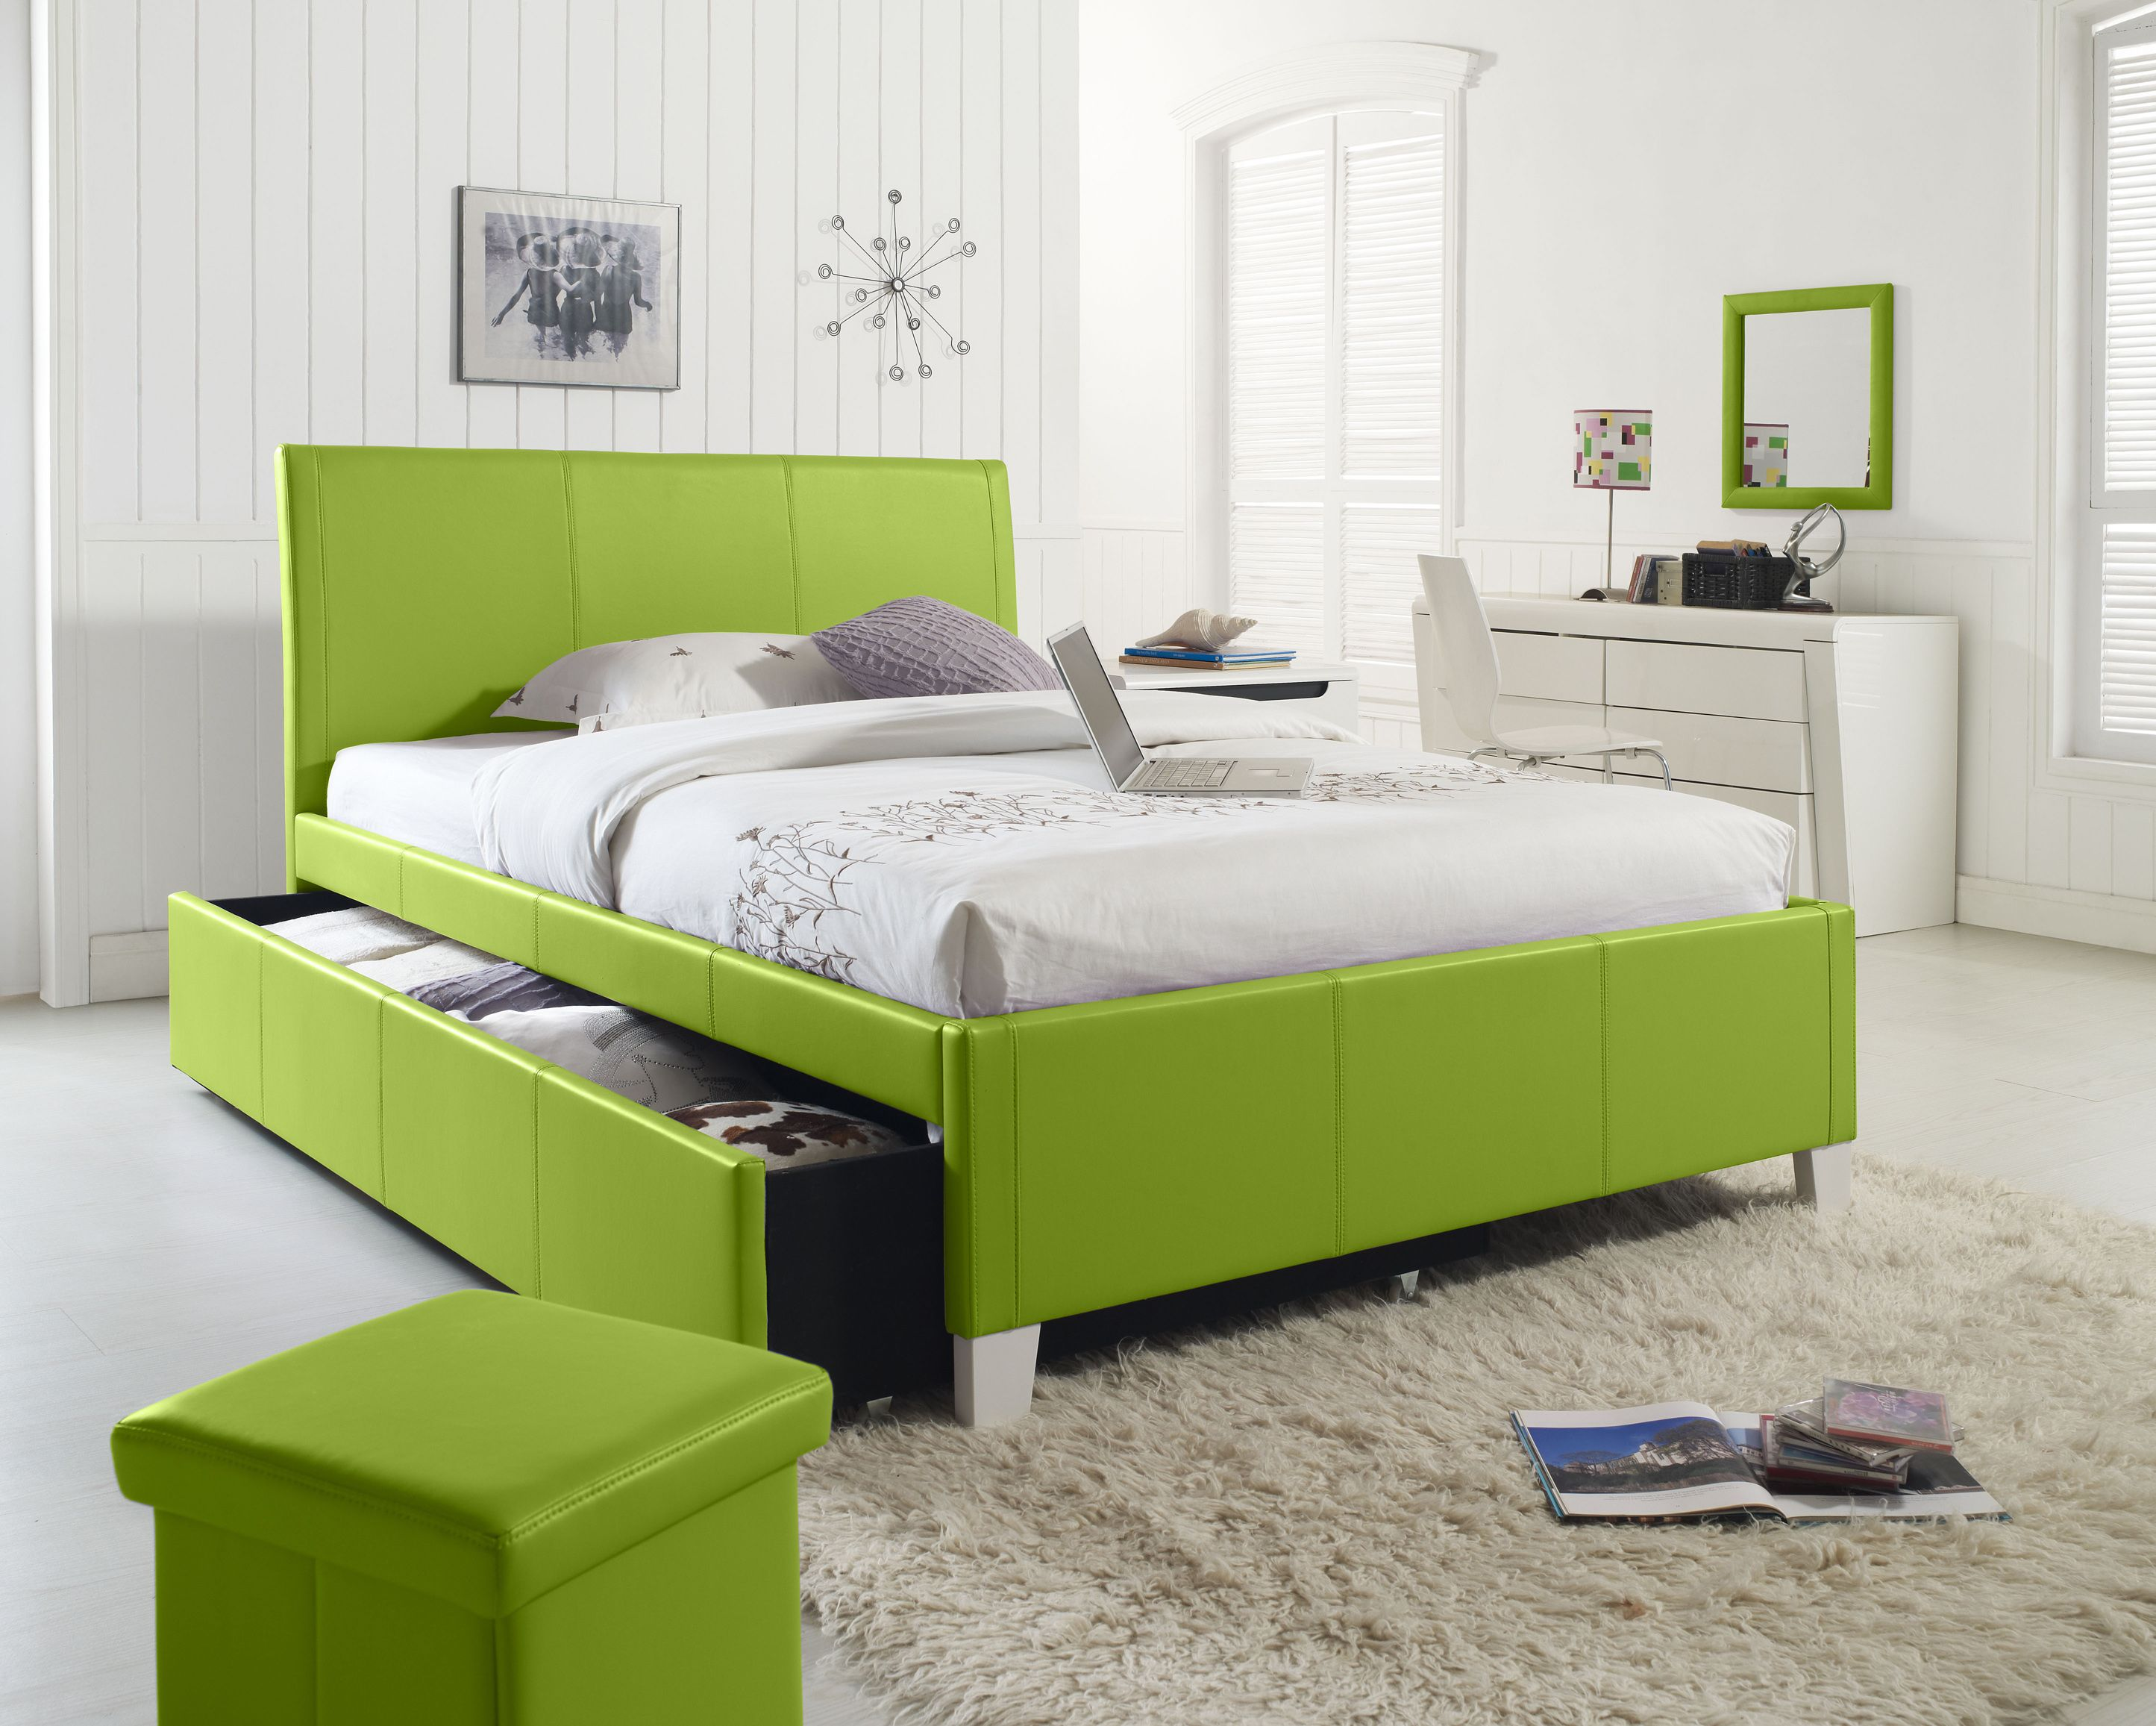 Standard Furniture Fantasia Trundle Full Bed in Green